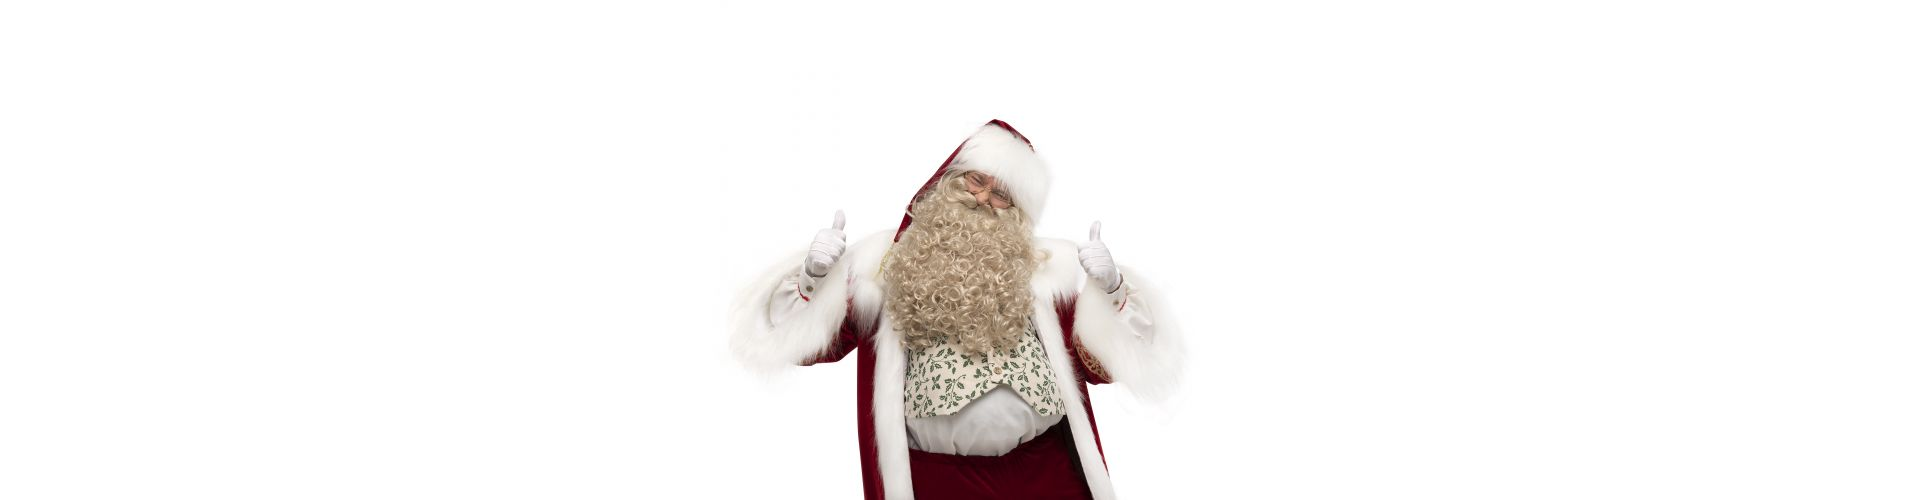 Same and different beards: a necessary accent for the image of Santa Claus, Santa Claus and St. Nicholas